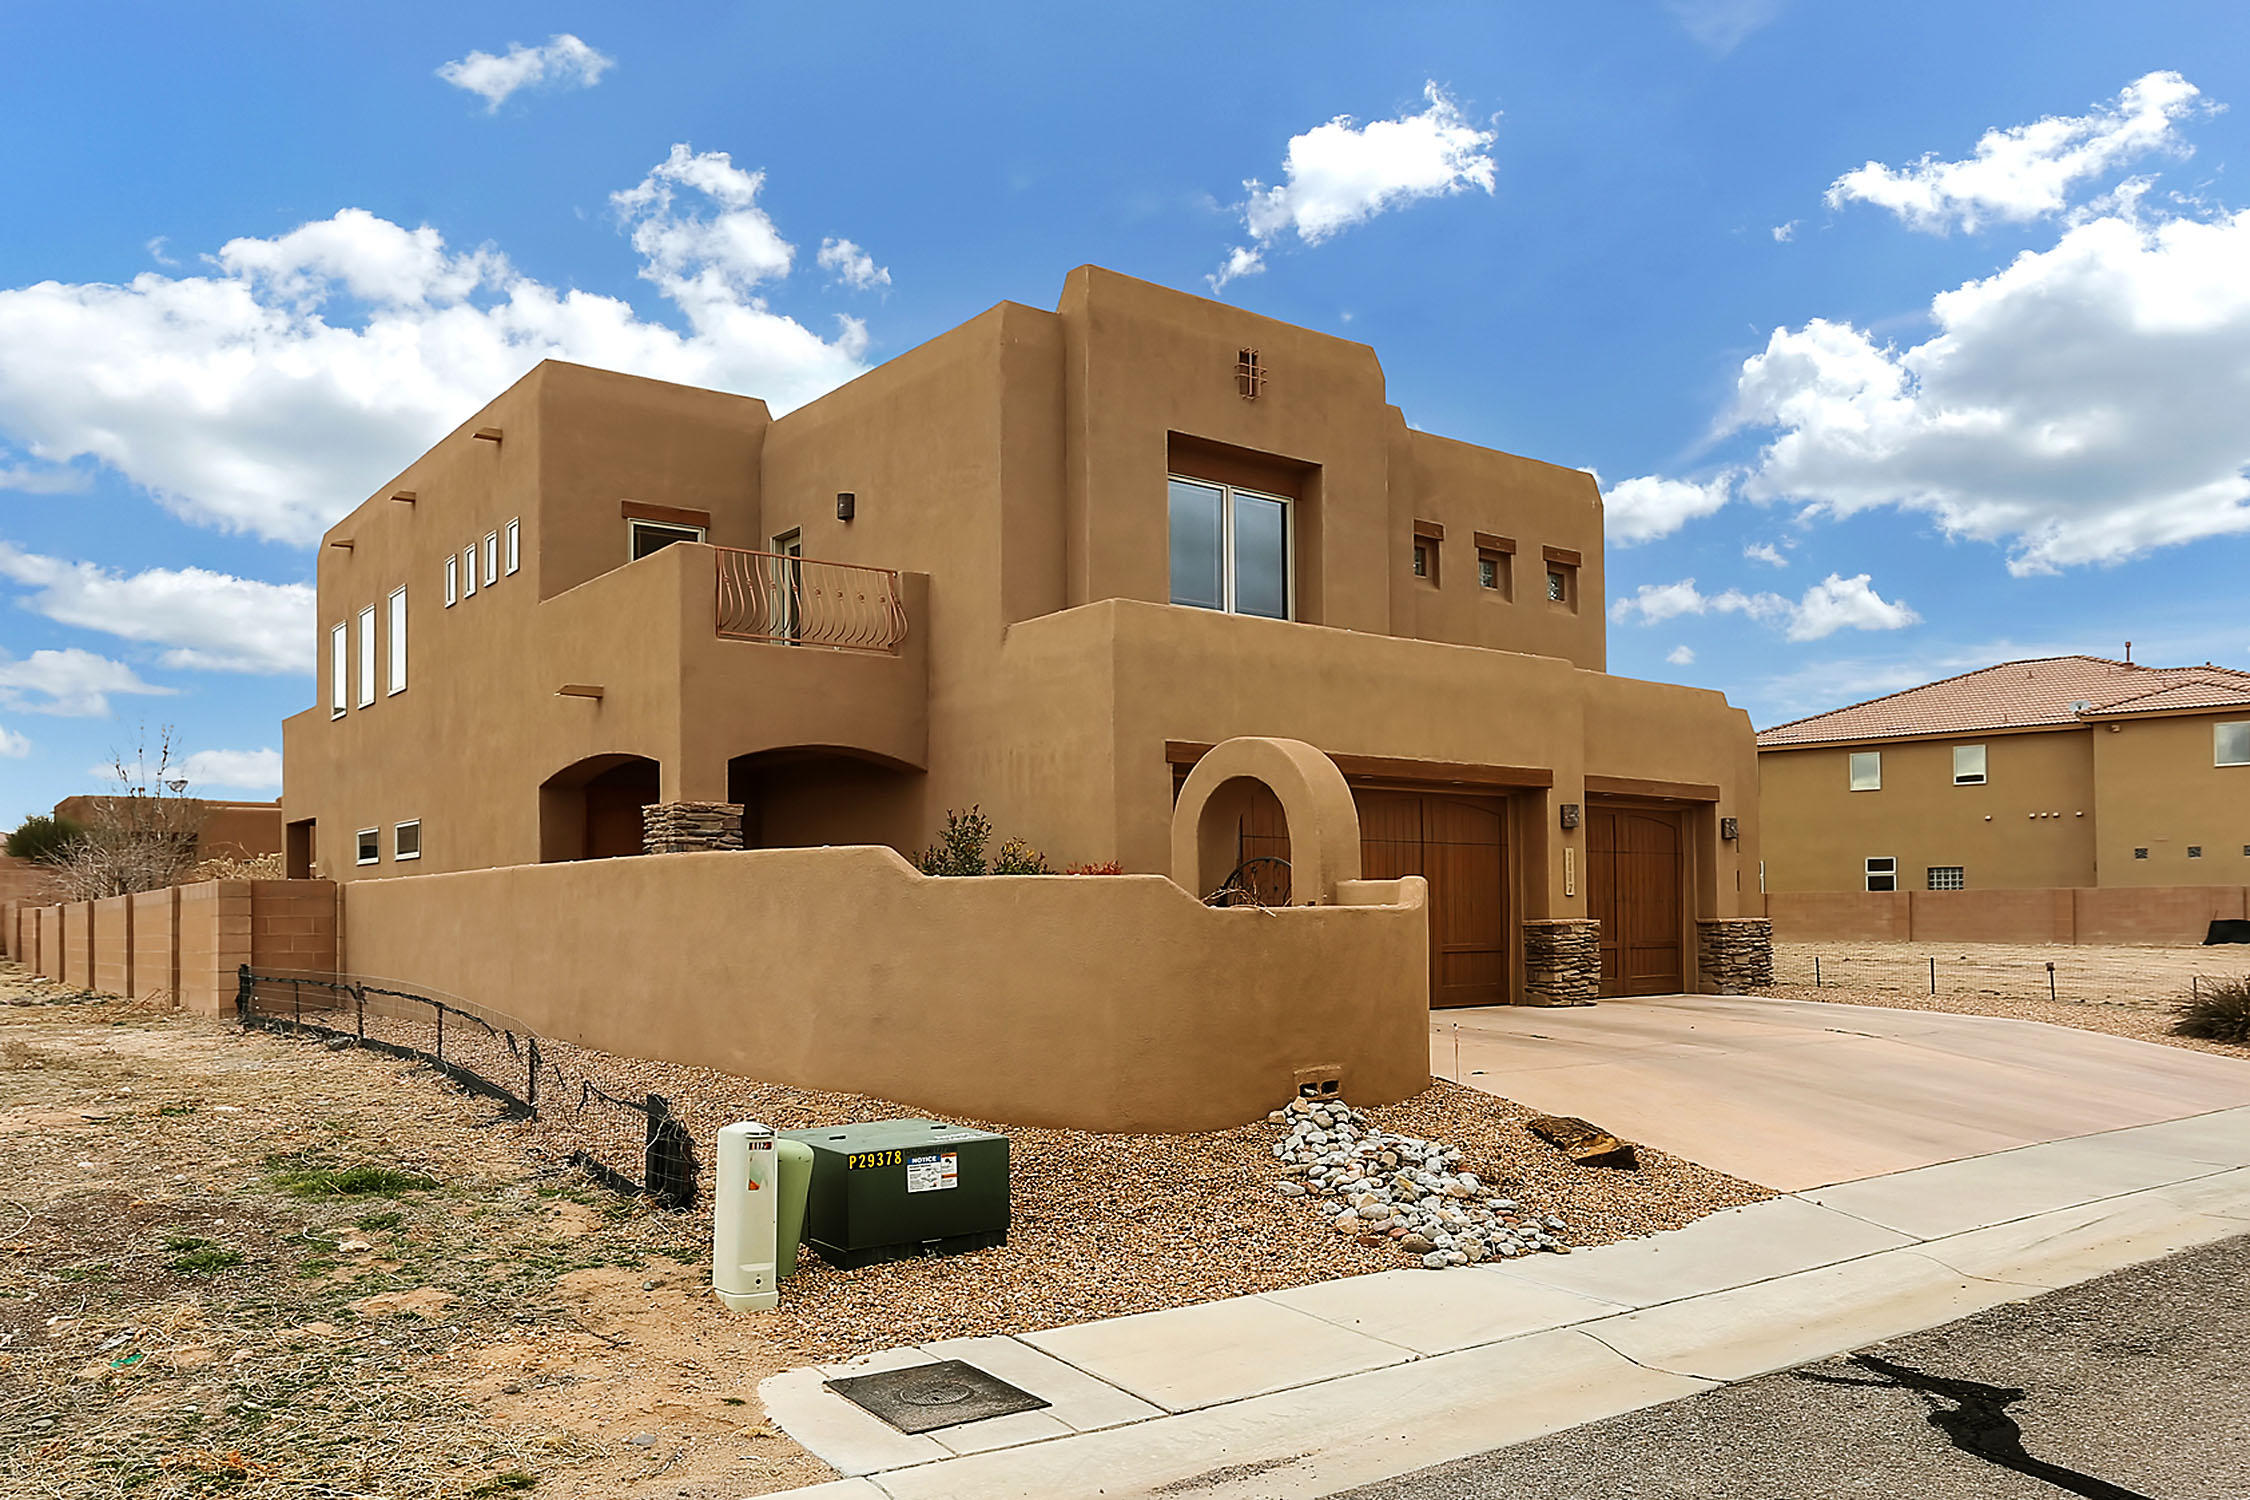 1117 PALO ALTO COURT, BERNALILLO, NM 87004